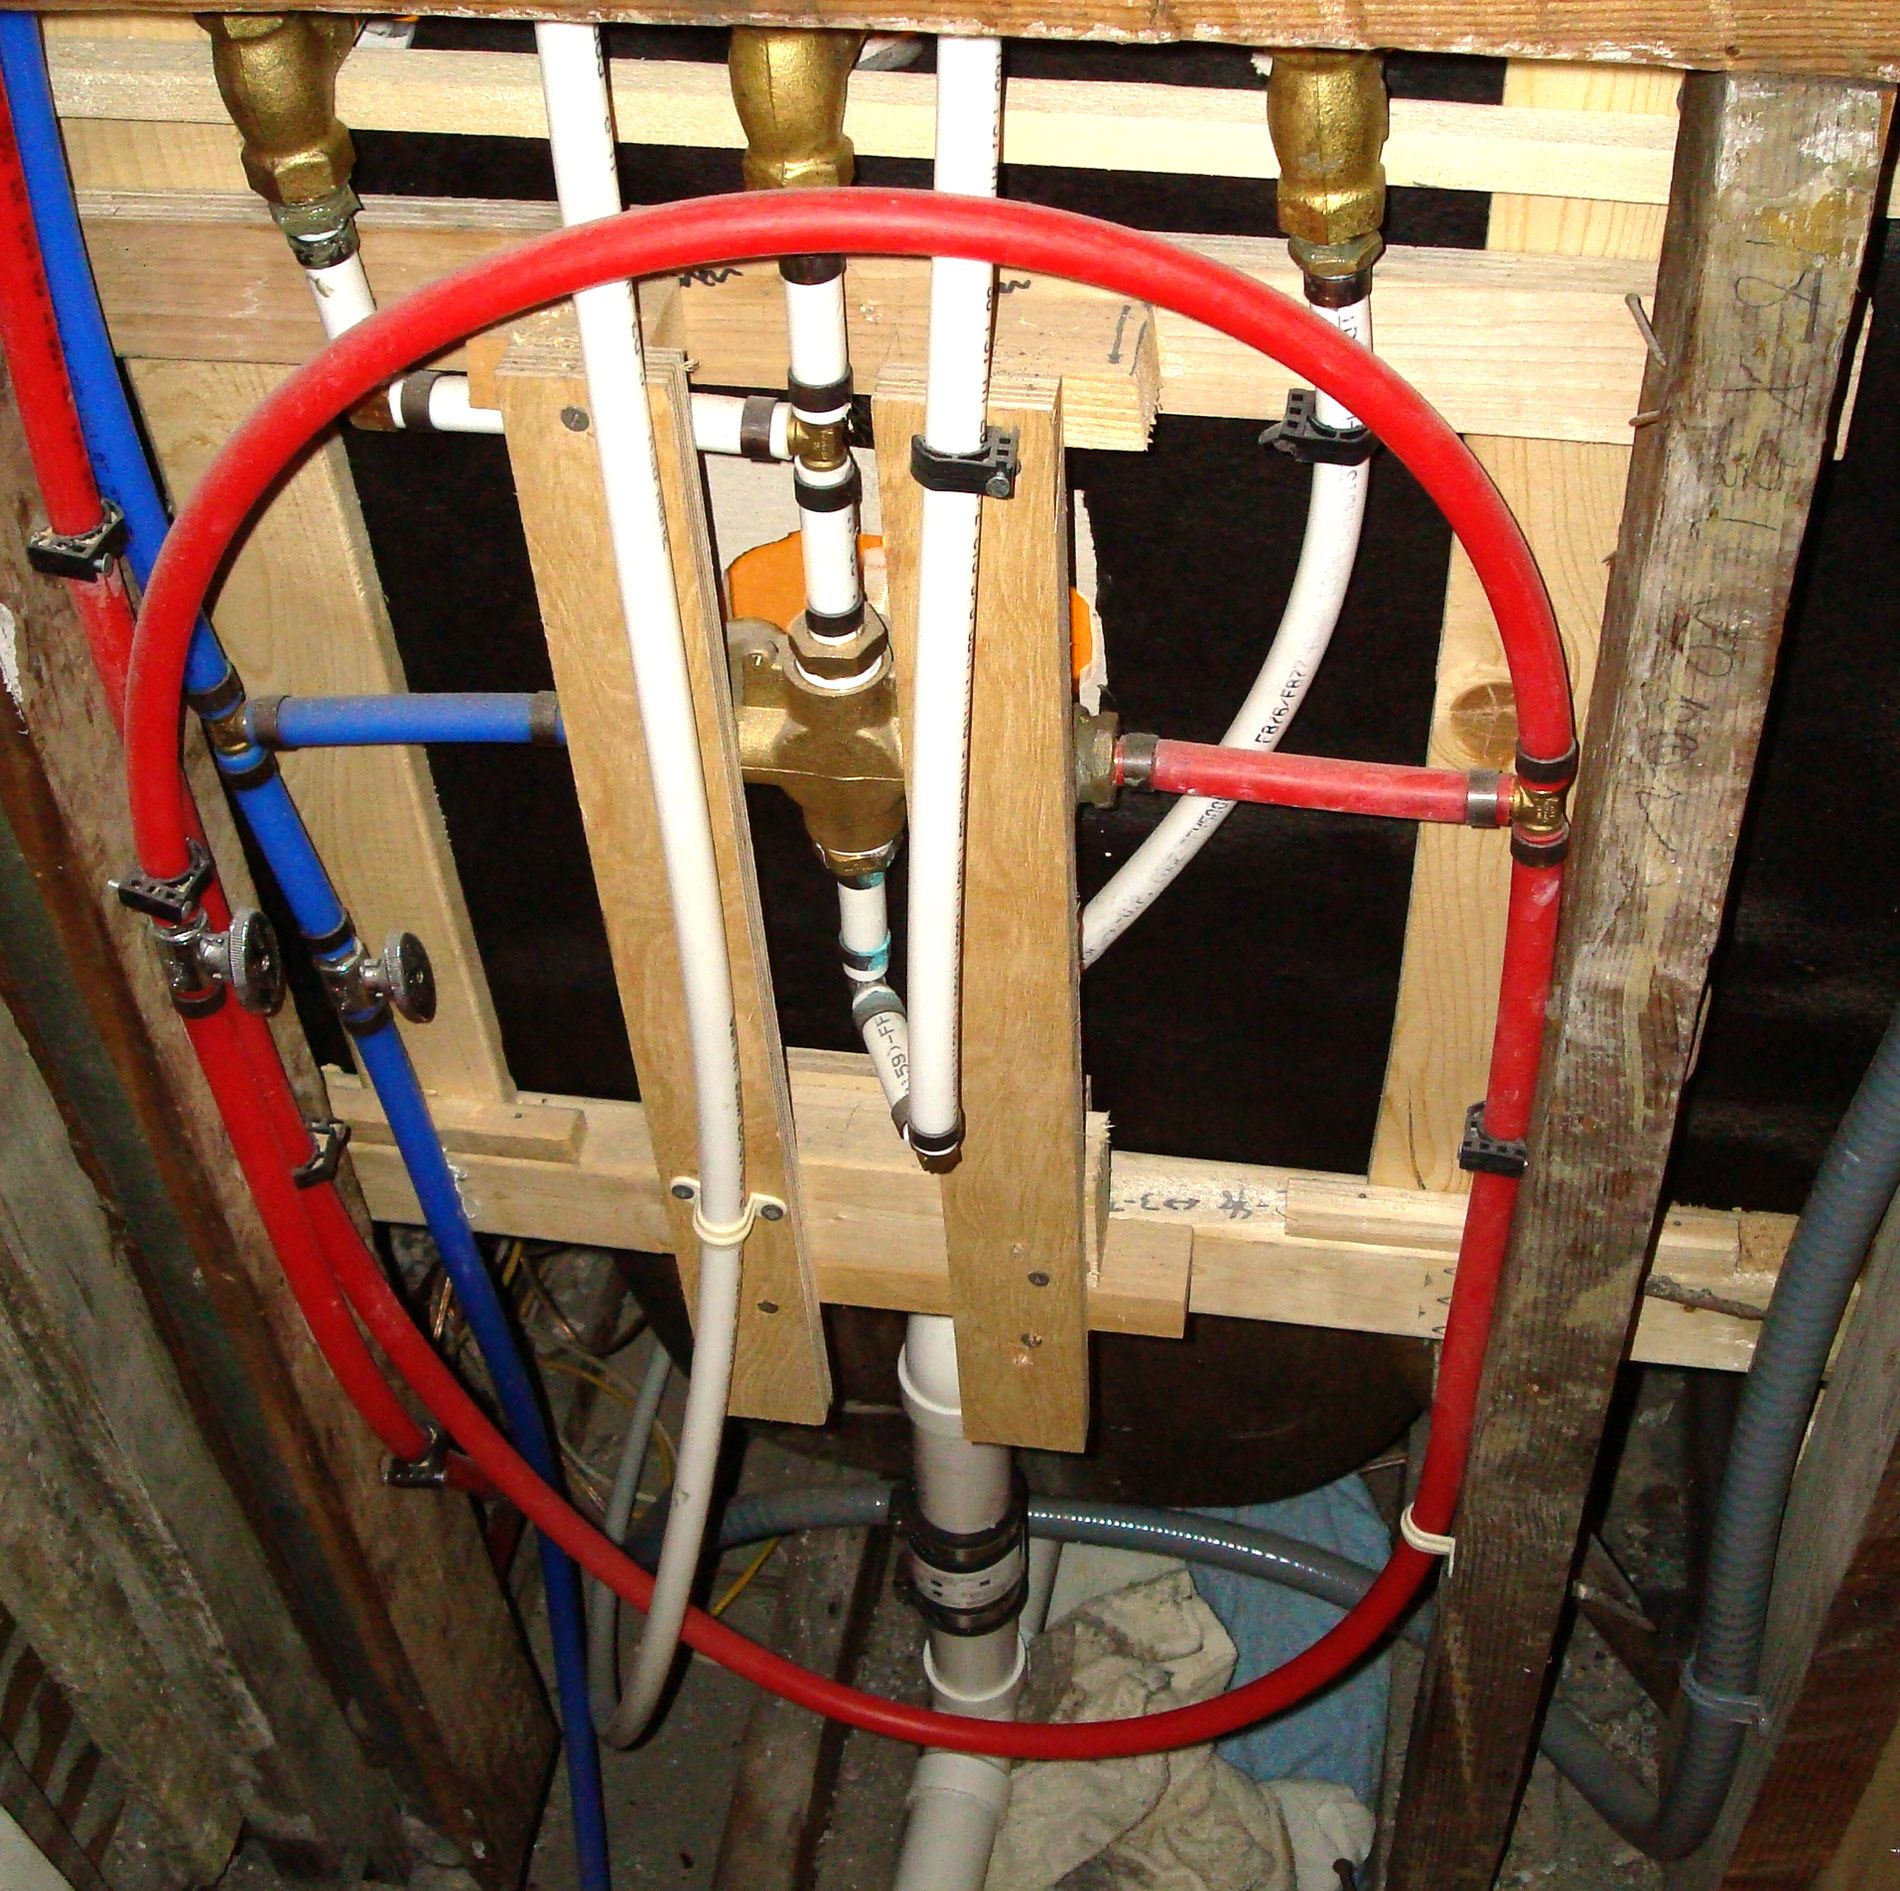 Plumbing With Pex Ideas Pinterest Wiring Basement Remodel Bathroom Installation Electrical